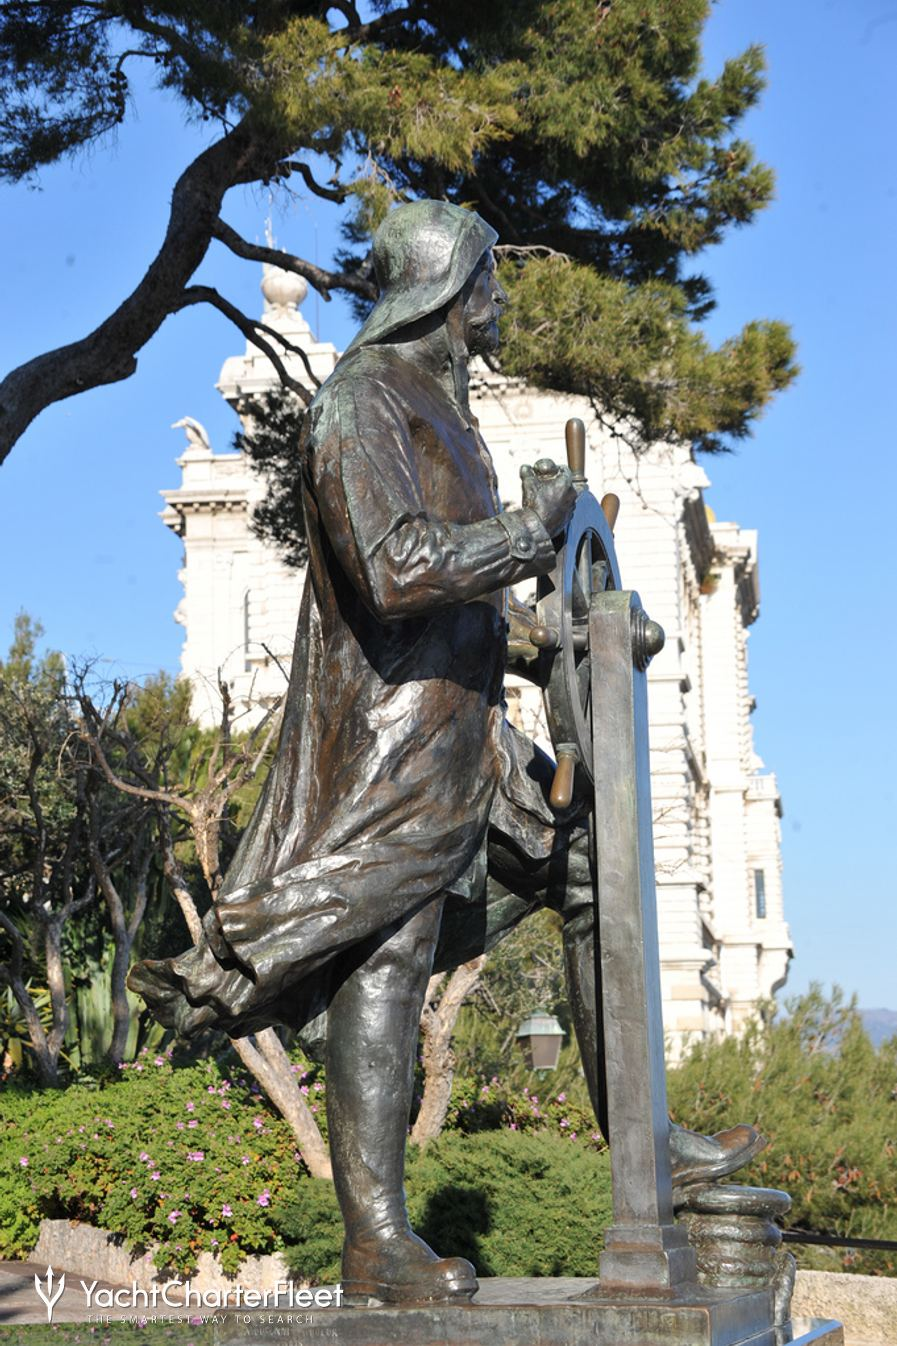 Statue of Sailor, Jardin St. Martin